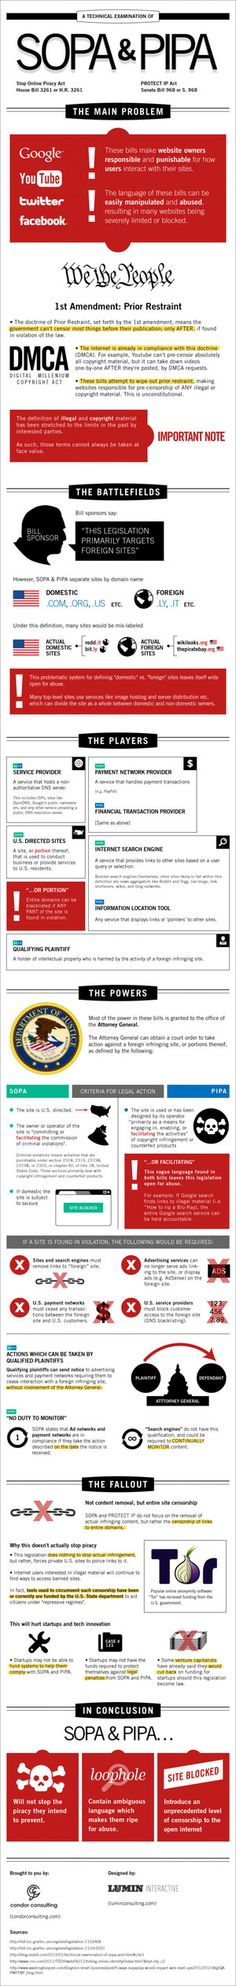 Great infographic that explains in simple terms, the problems with SOPA & PIPA